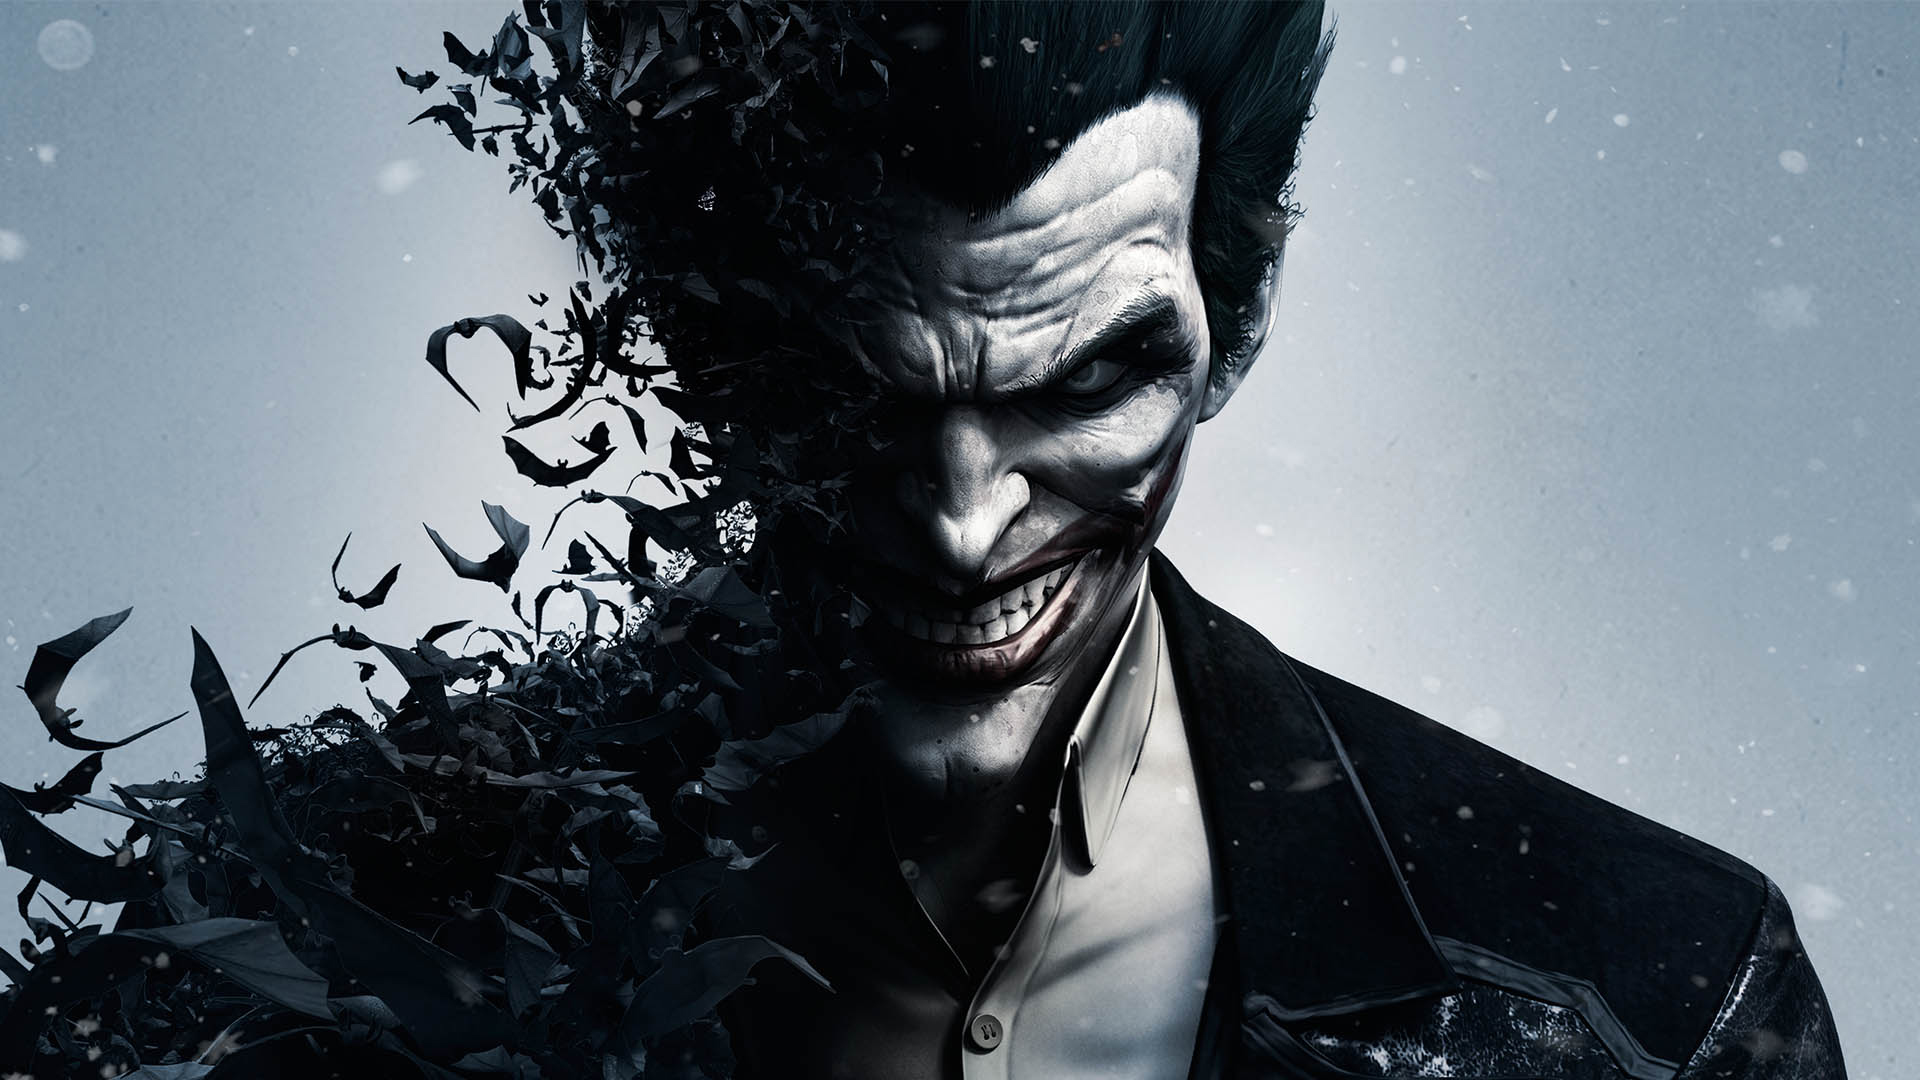 Batman   Arkham Origins   Joker Wallpaper HD   Select Game 1920x1080